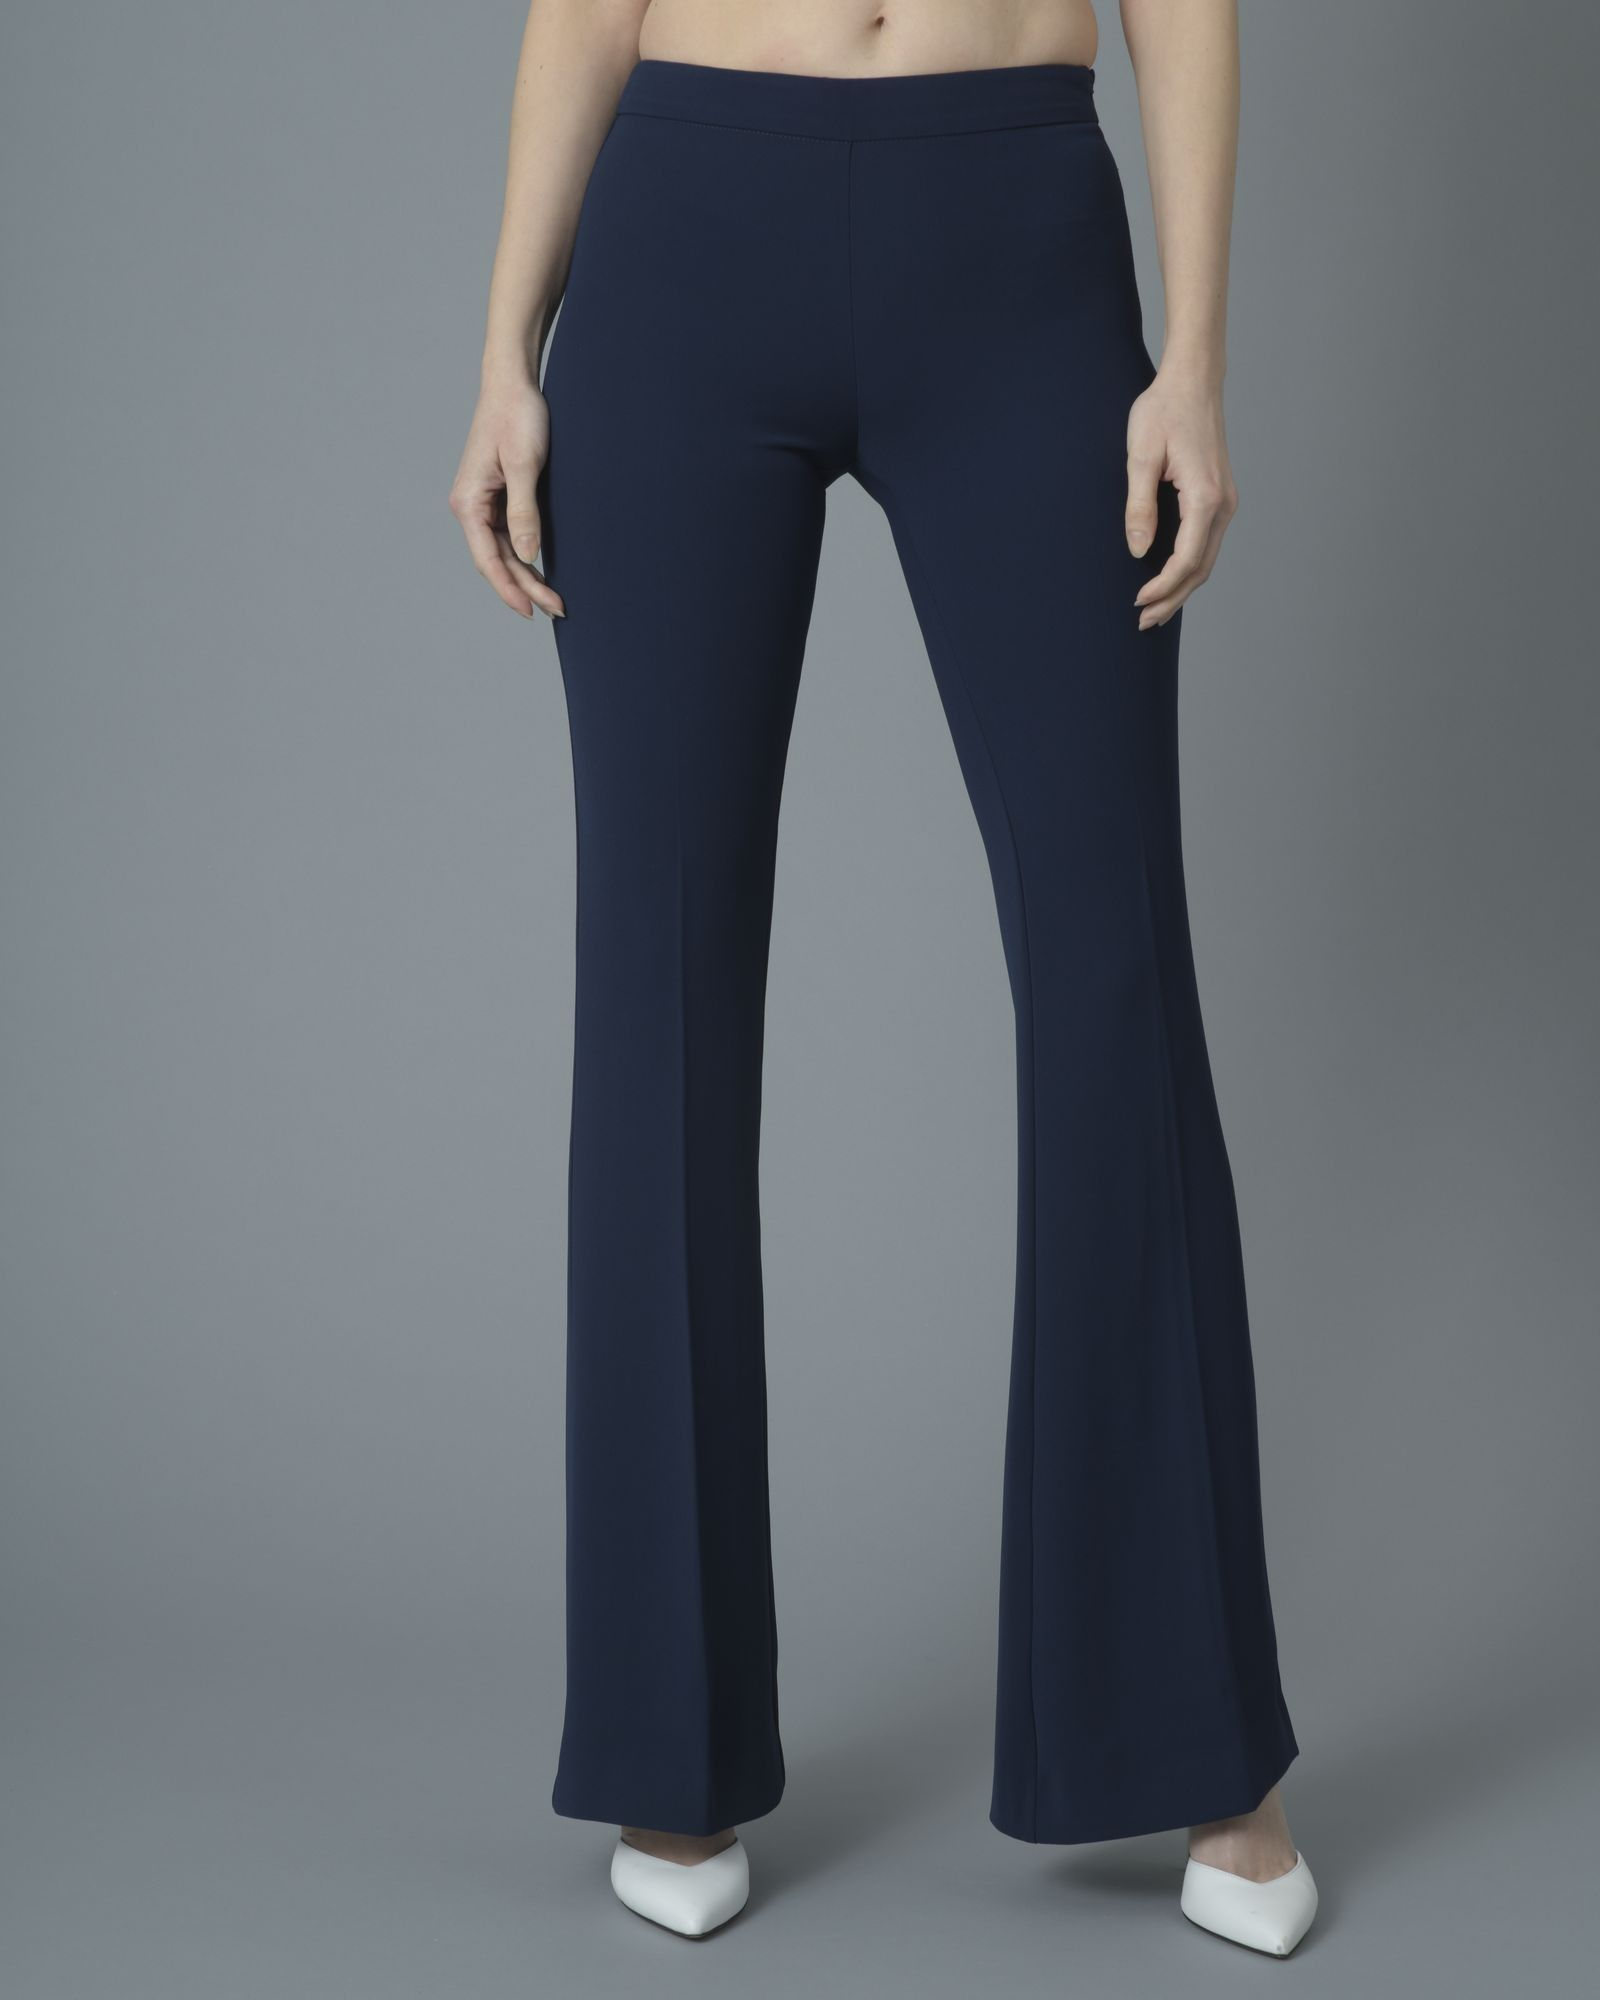 Pantalon navy blue évasé Space Simona Corsellini